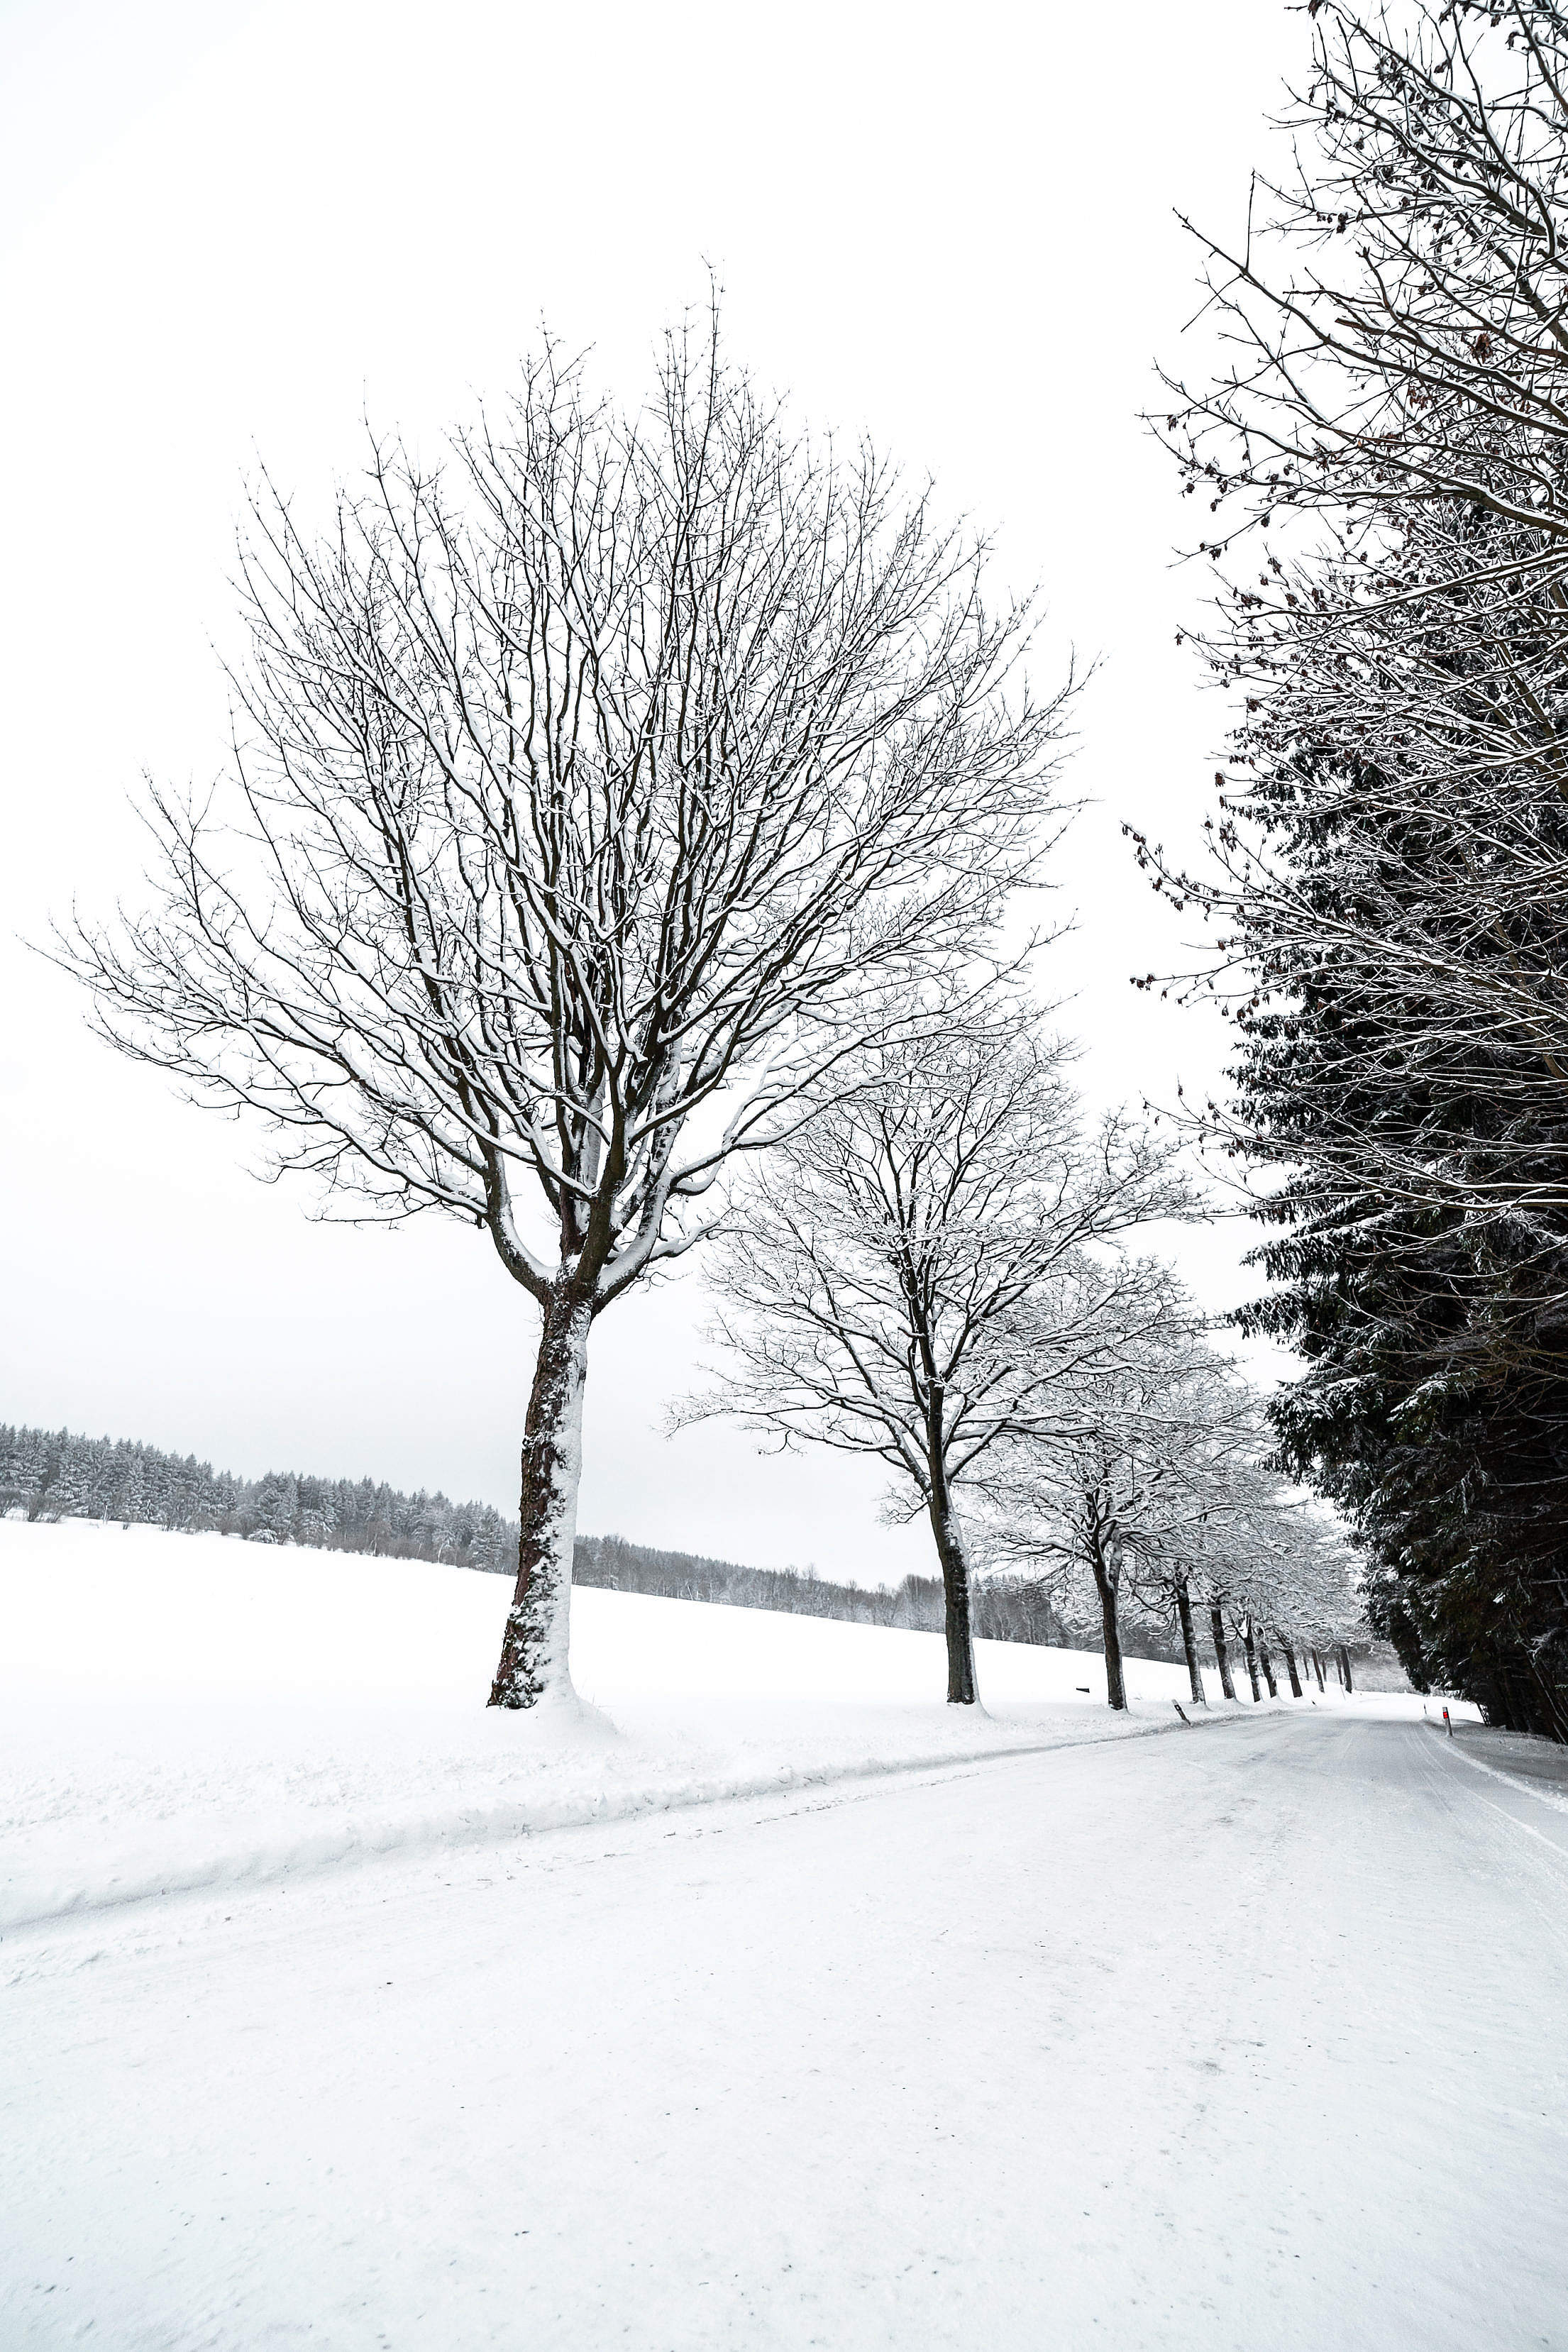 Alley of Trees Covered with Snow Free Stock Photo